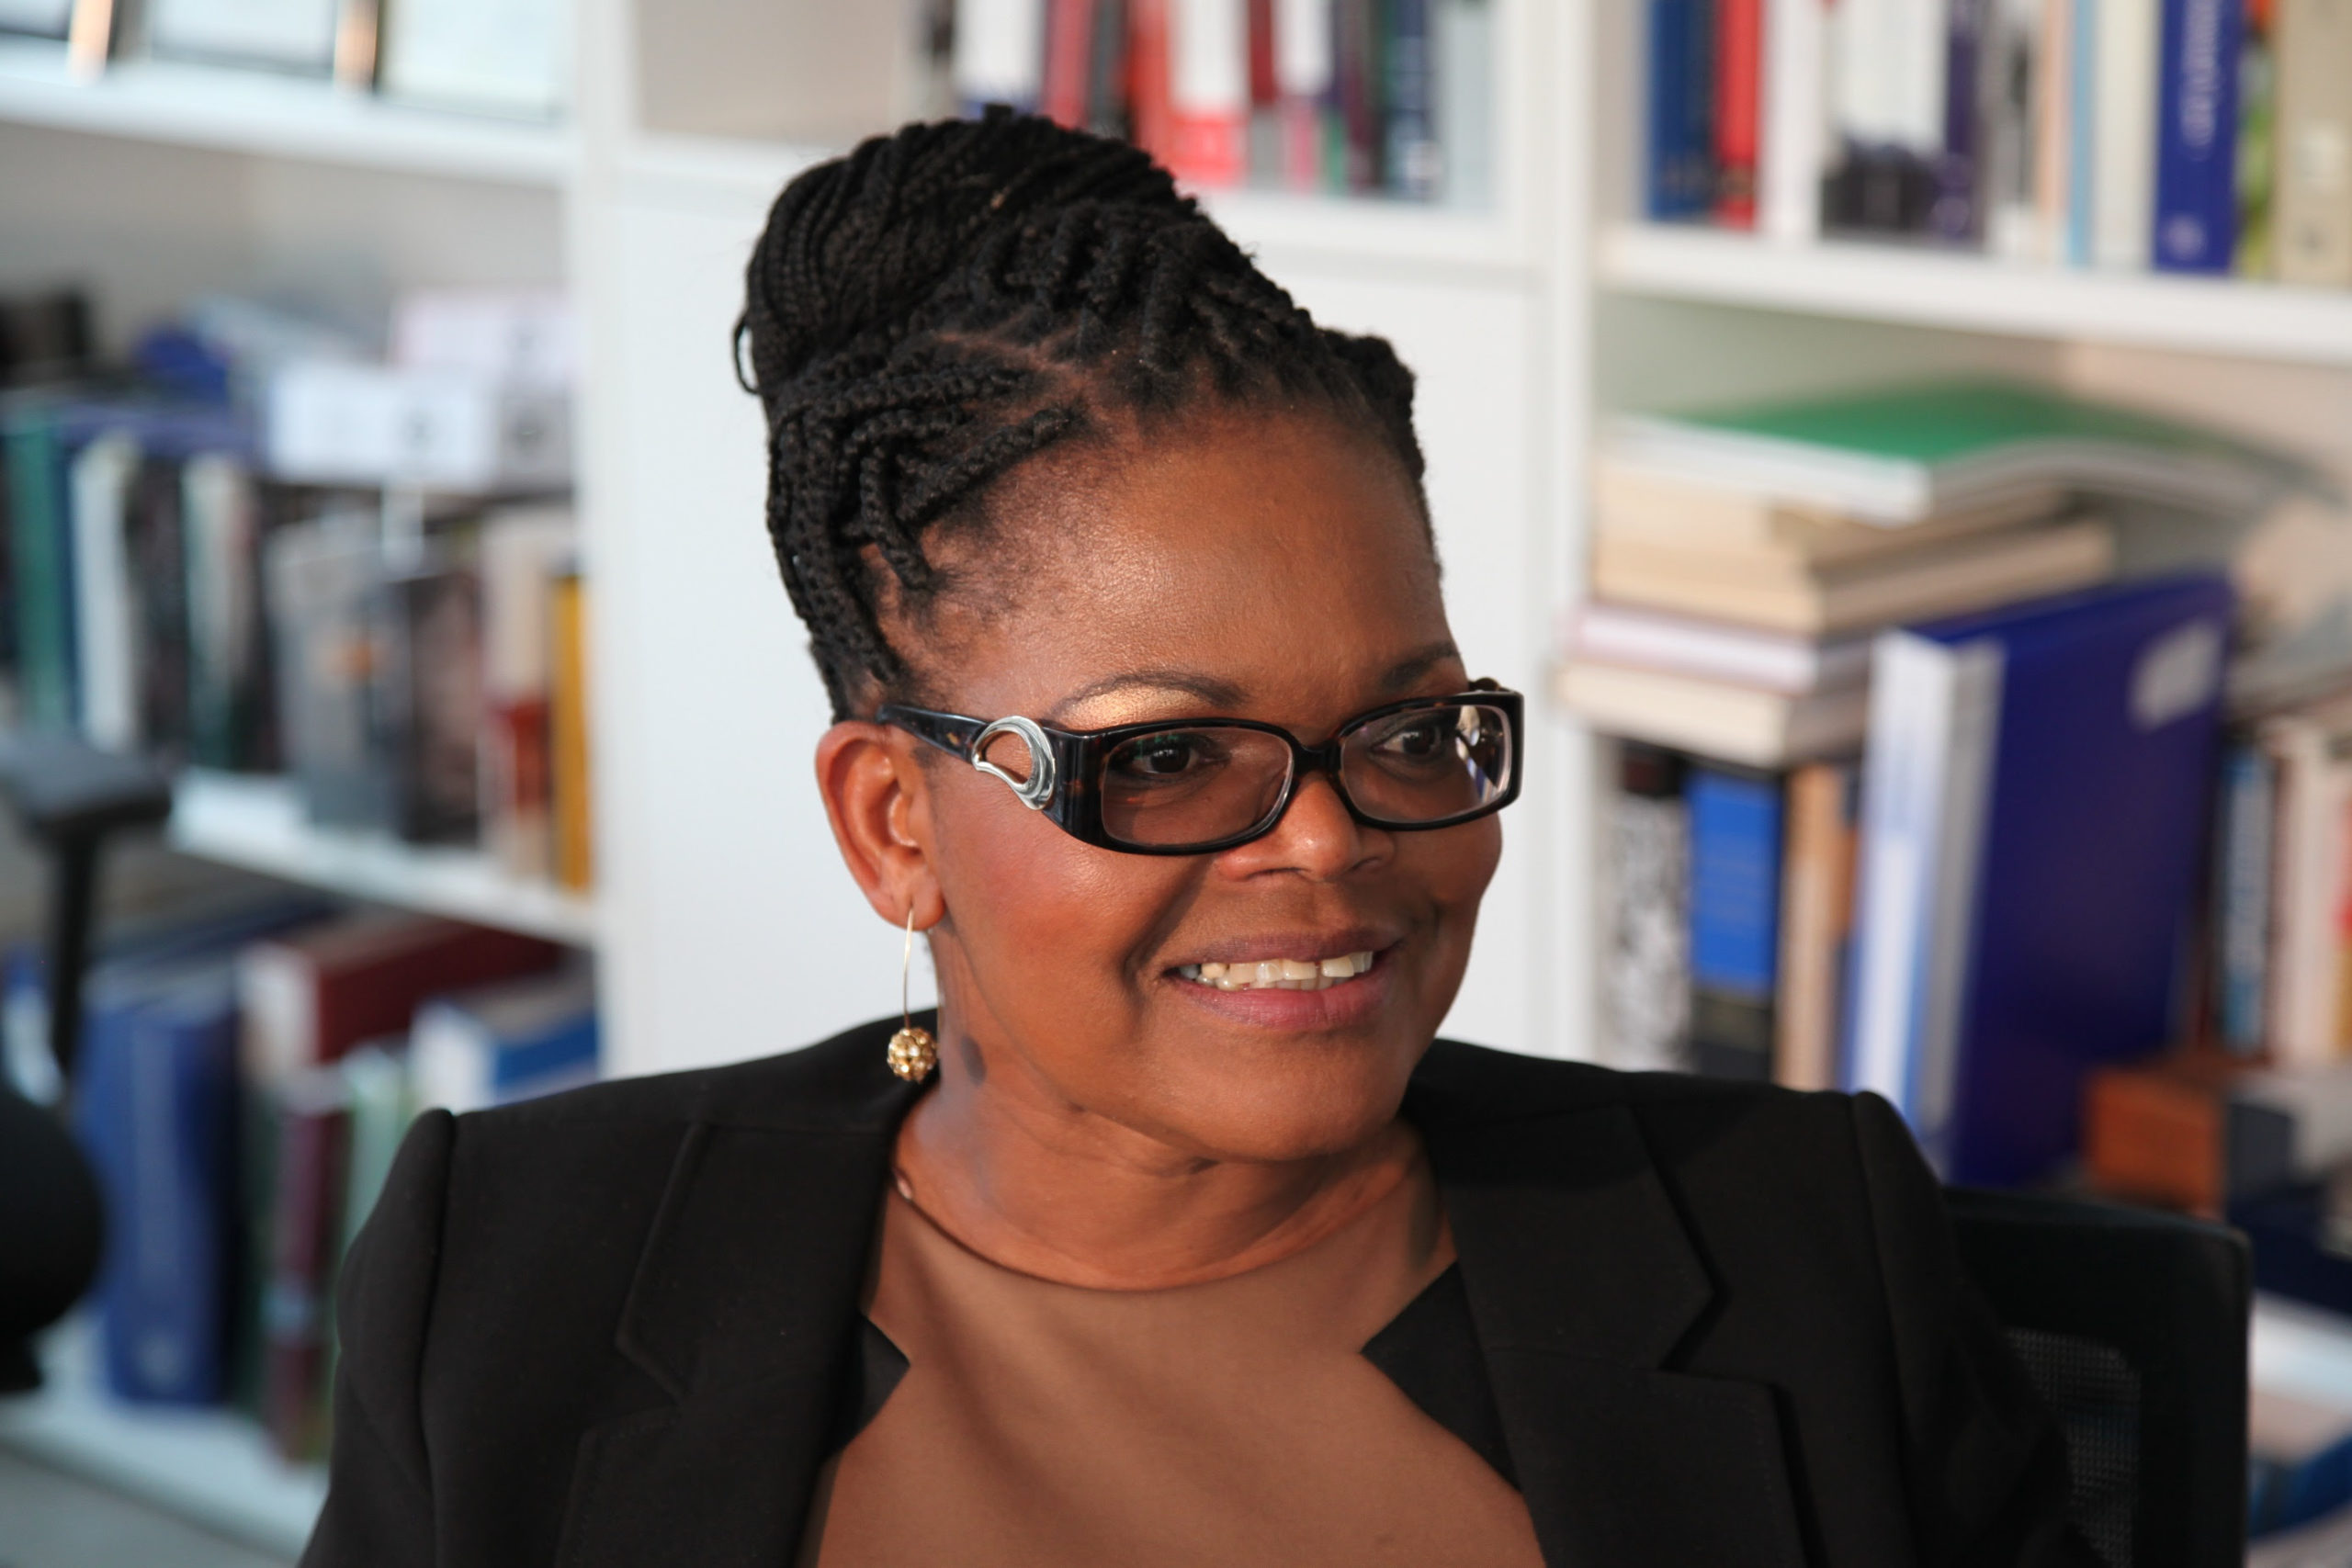 Comment on the call for the prosecution and disqualification of Beatrice Mtetwa in Zim